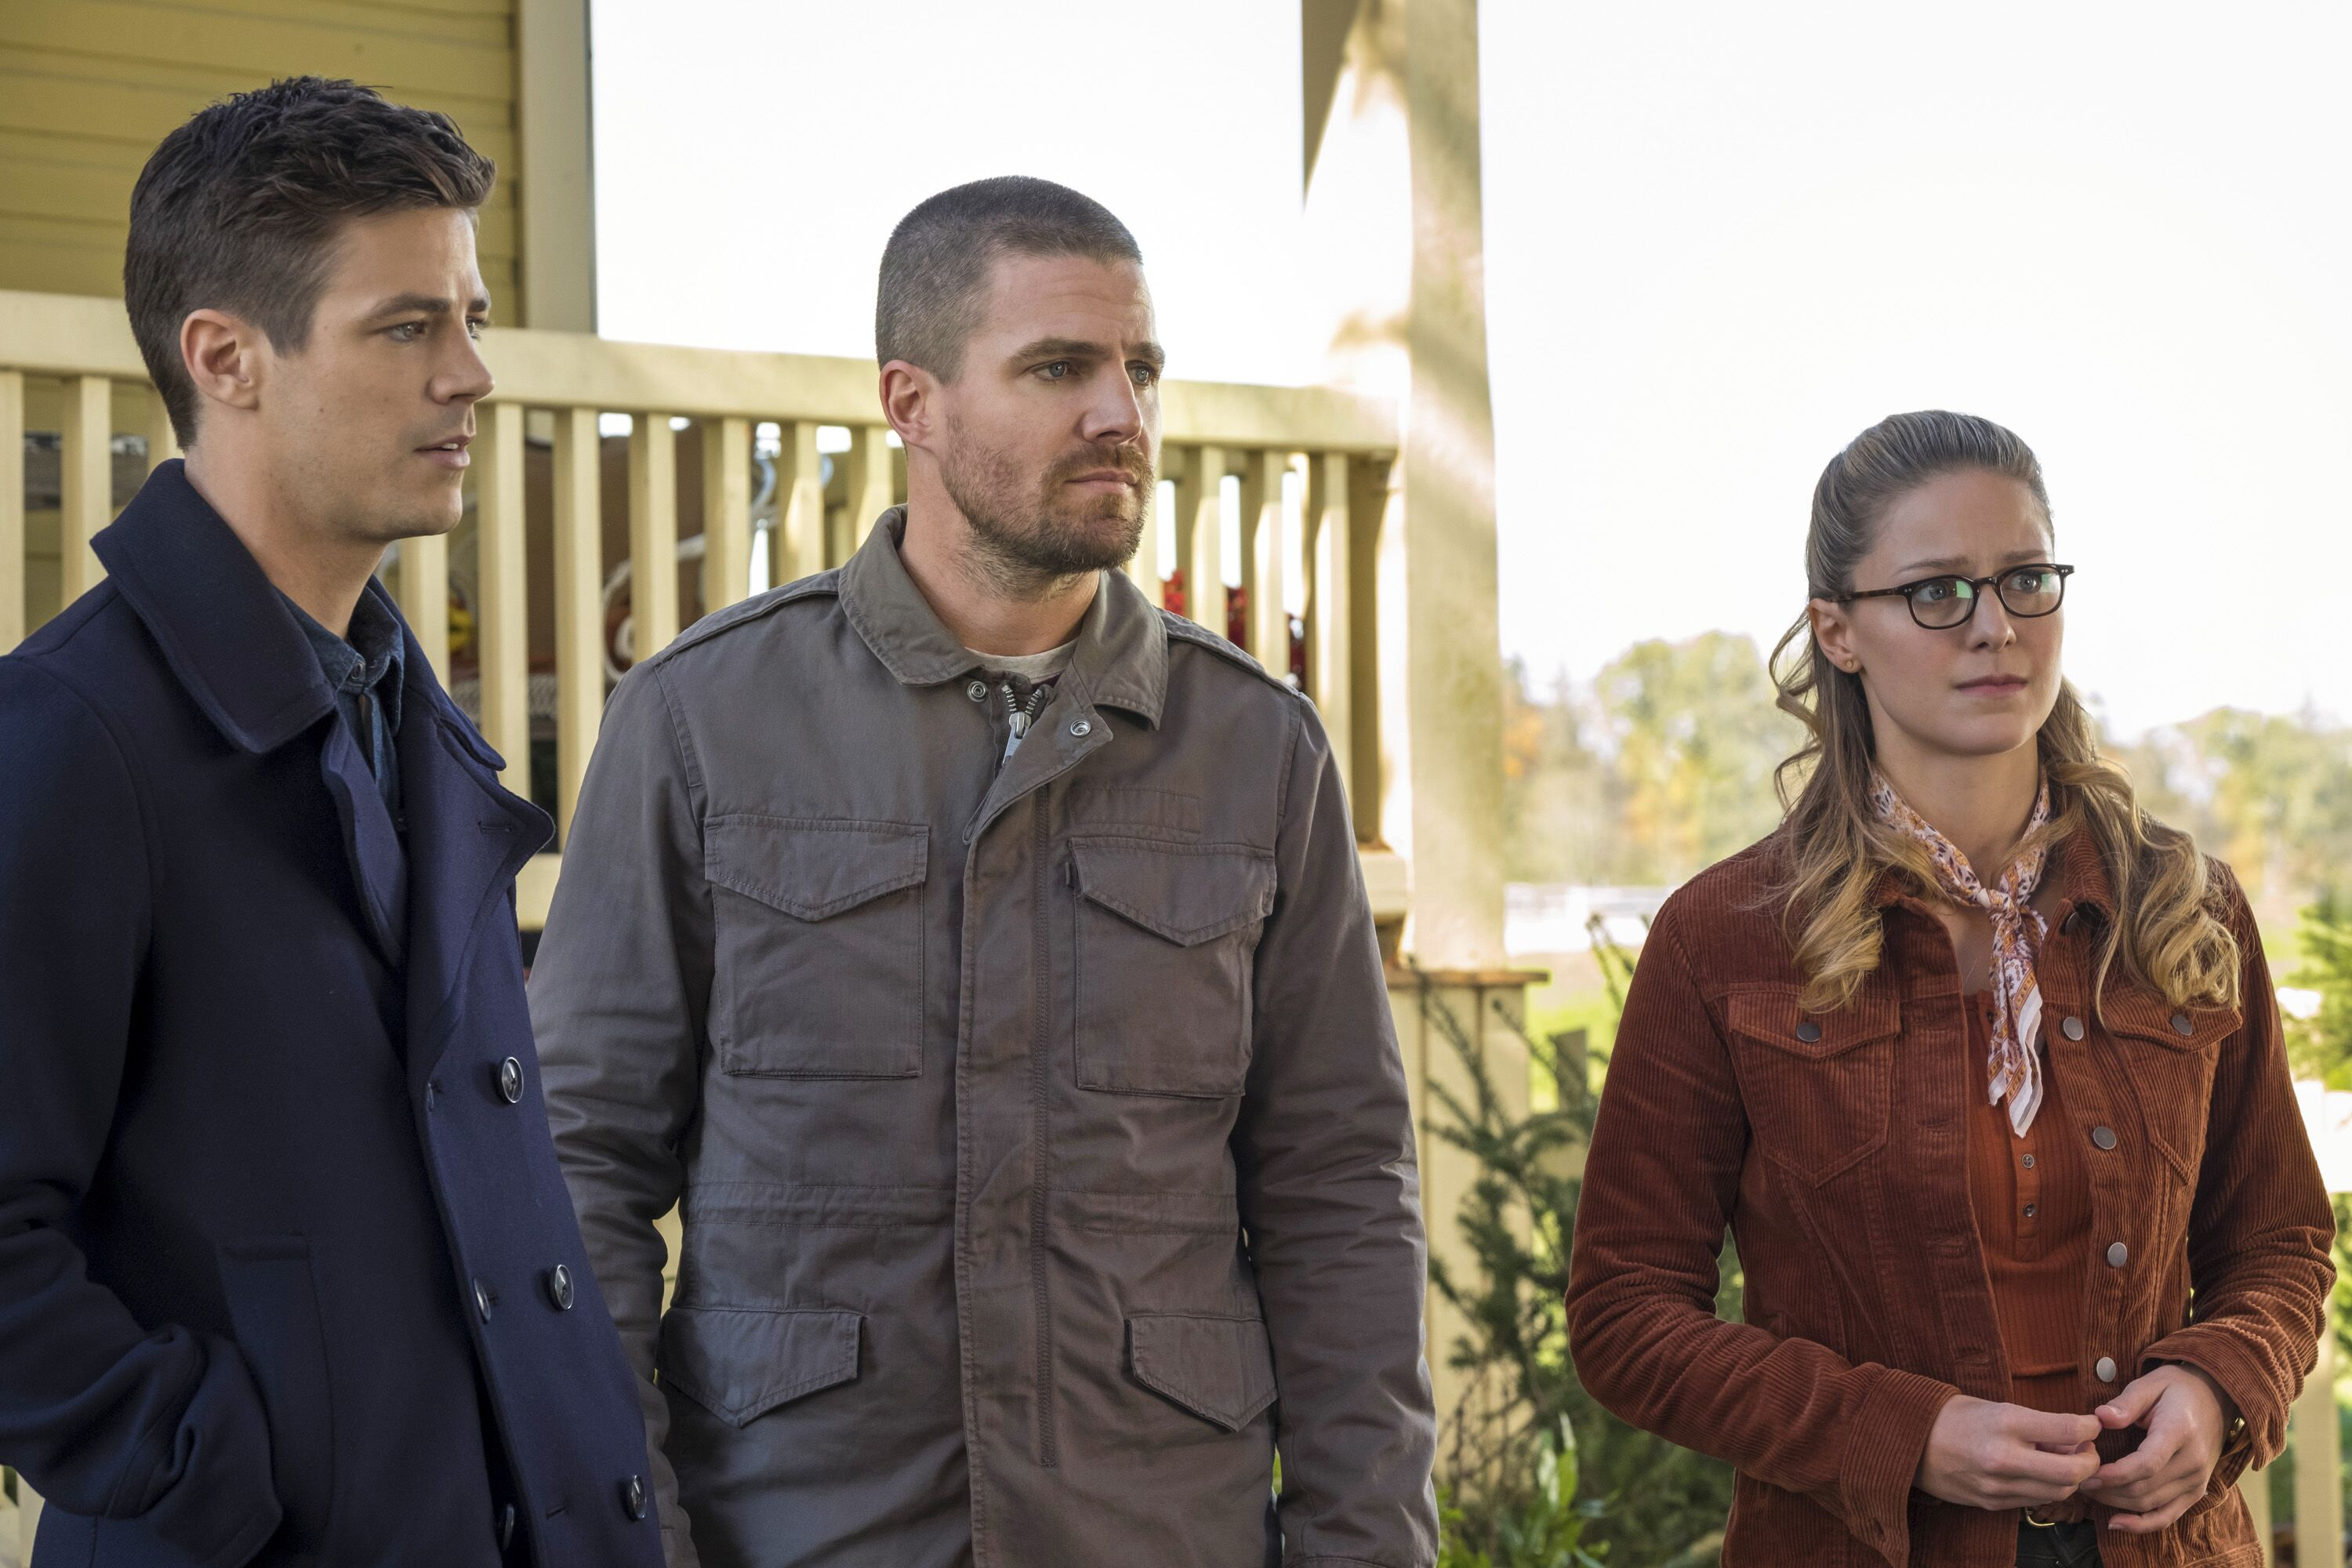 Elseworlds: Crossover will have long-term consequences in the Arrowverse